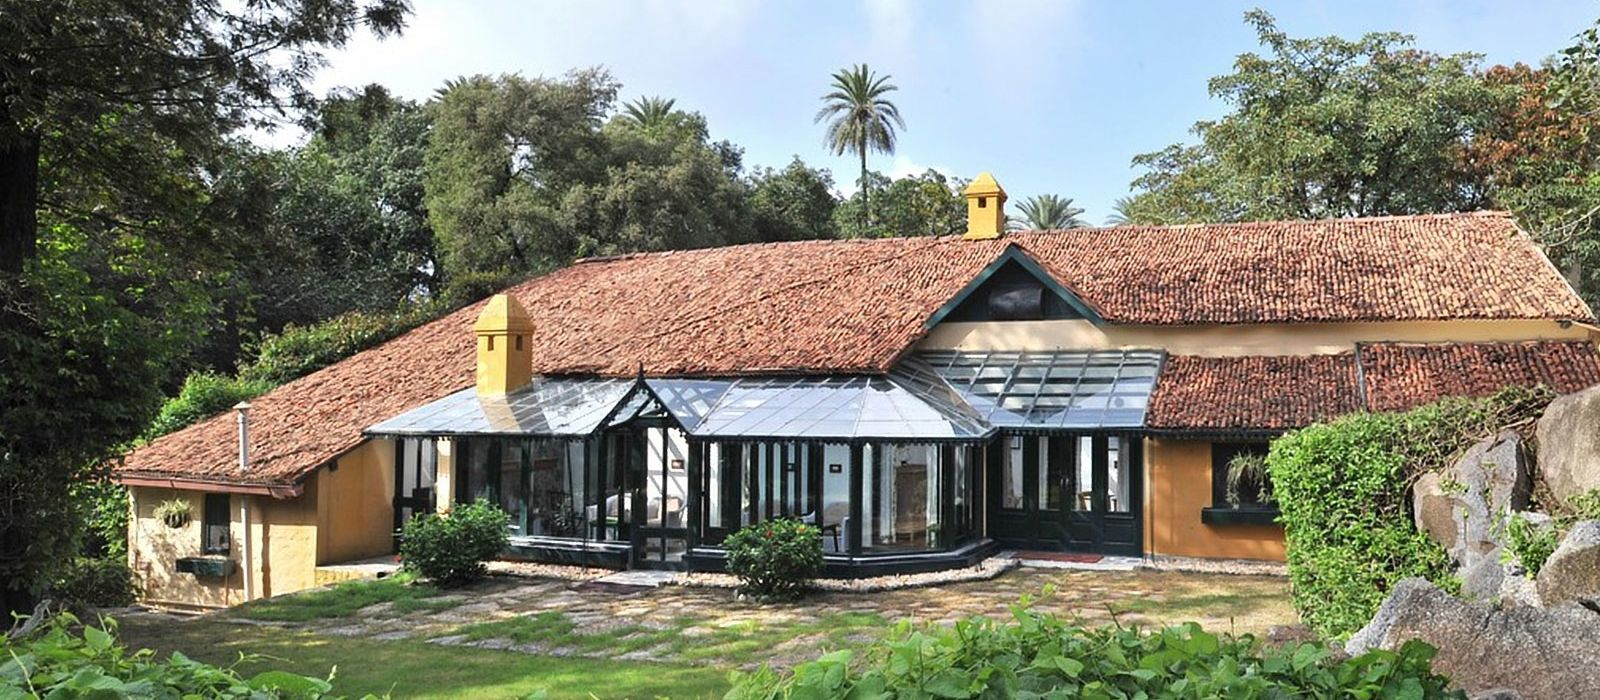 Hotel Connaught House Nordindien